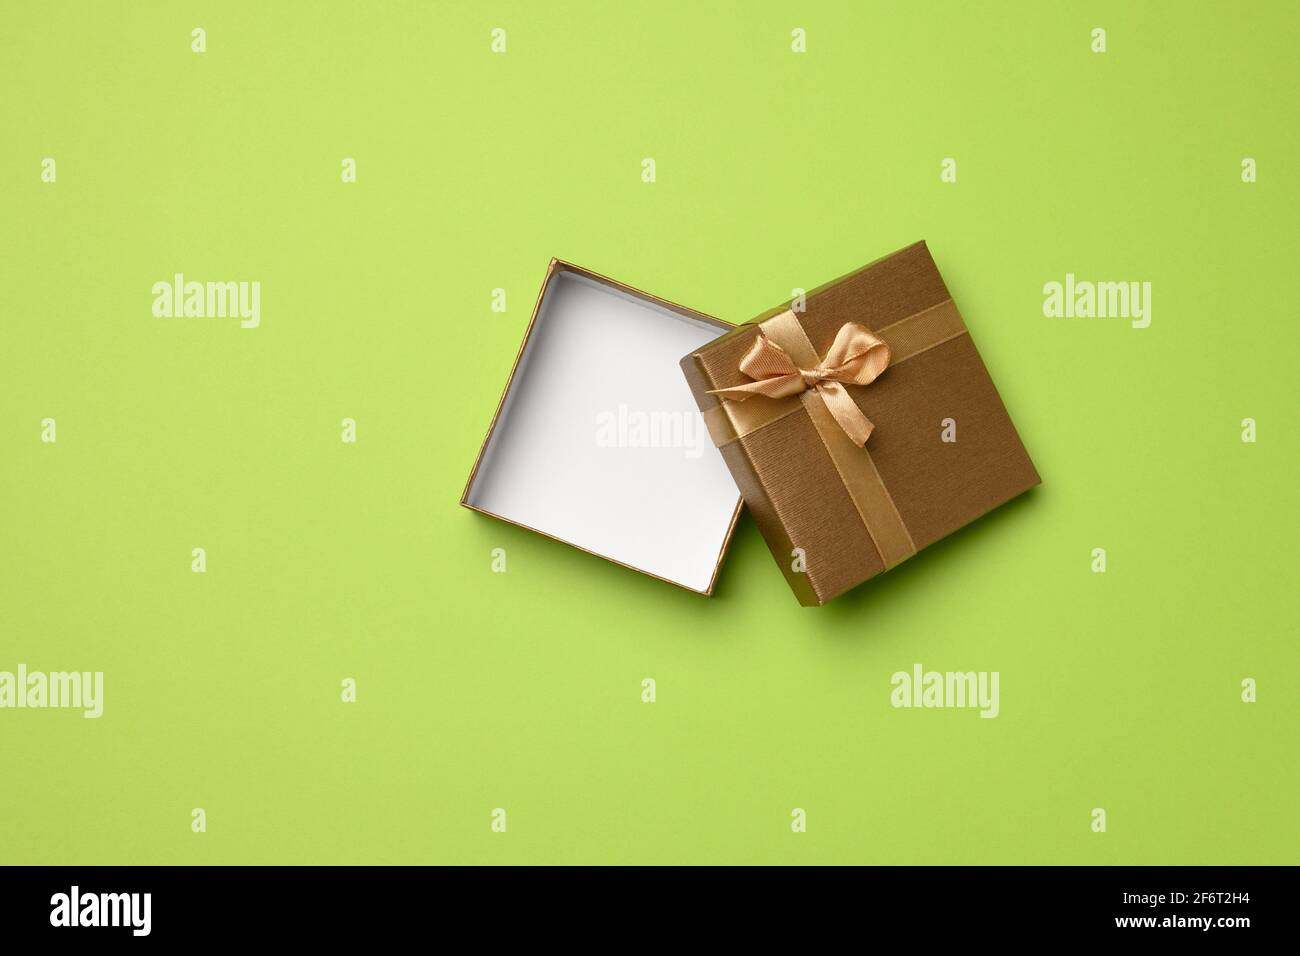 empty square golden box with cardboard bow on green background, gift open, top view. Stock Photo